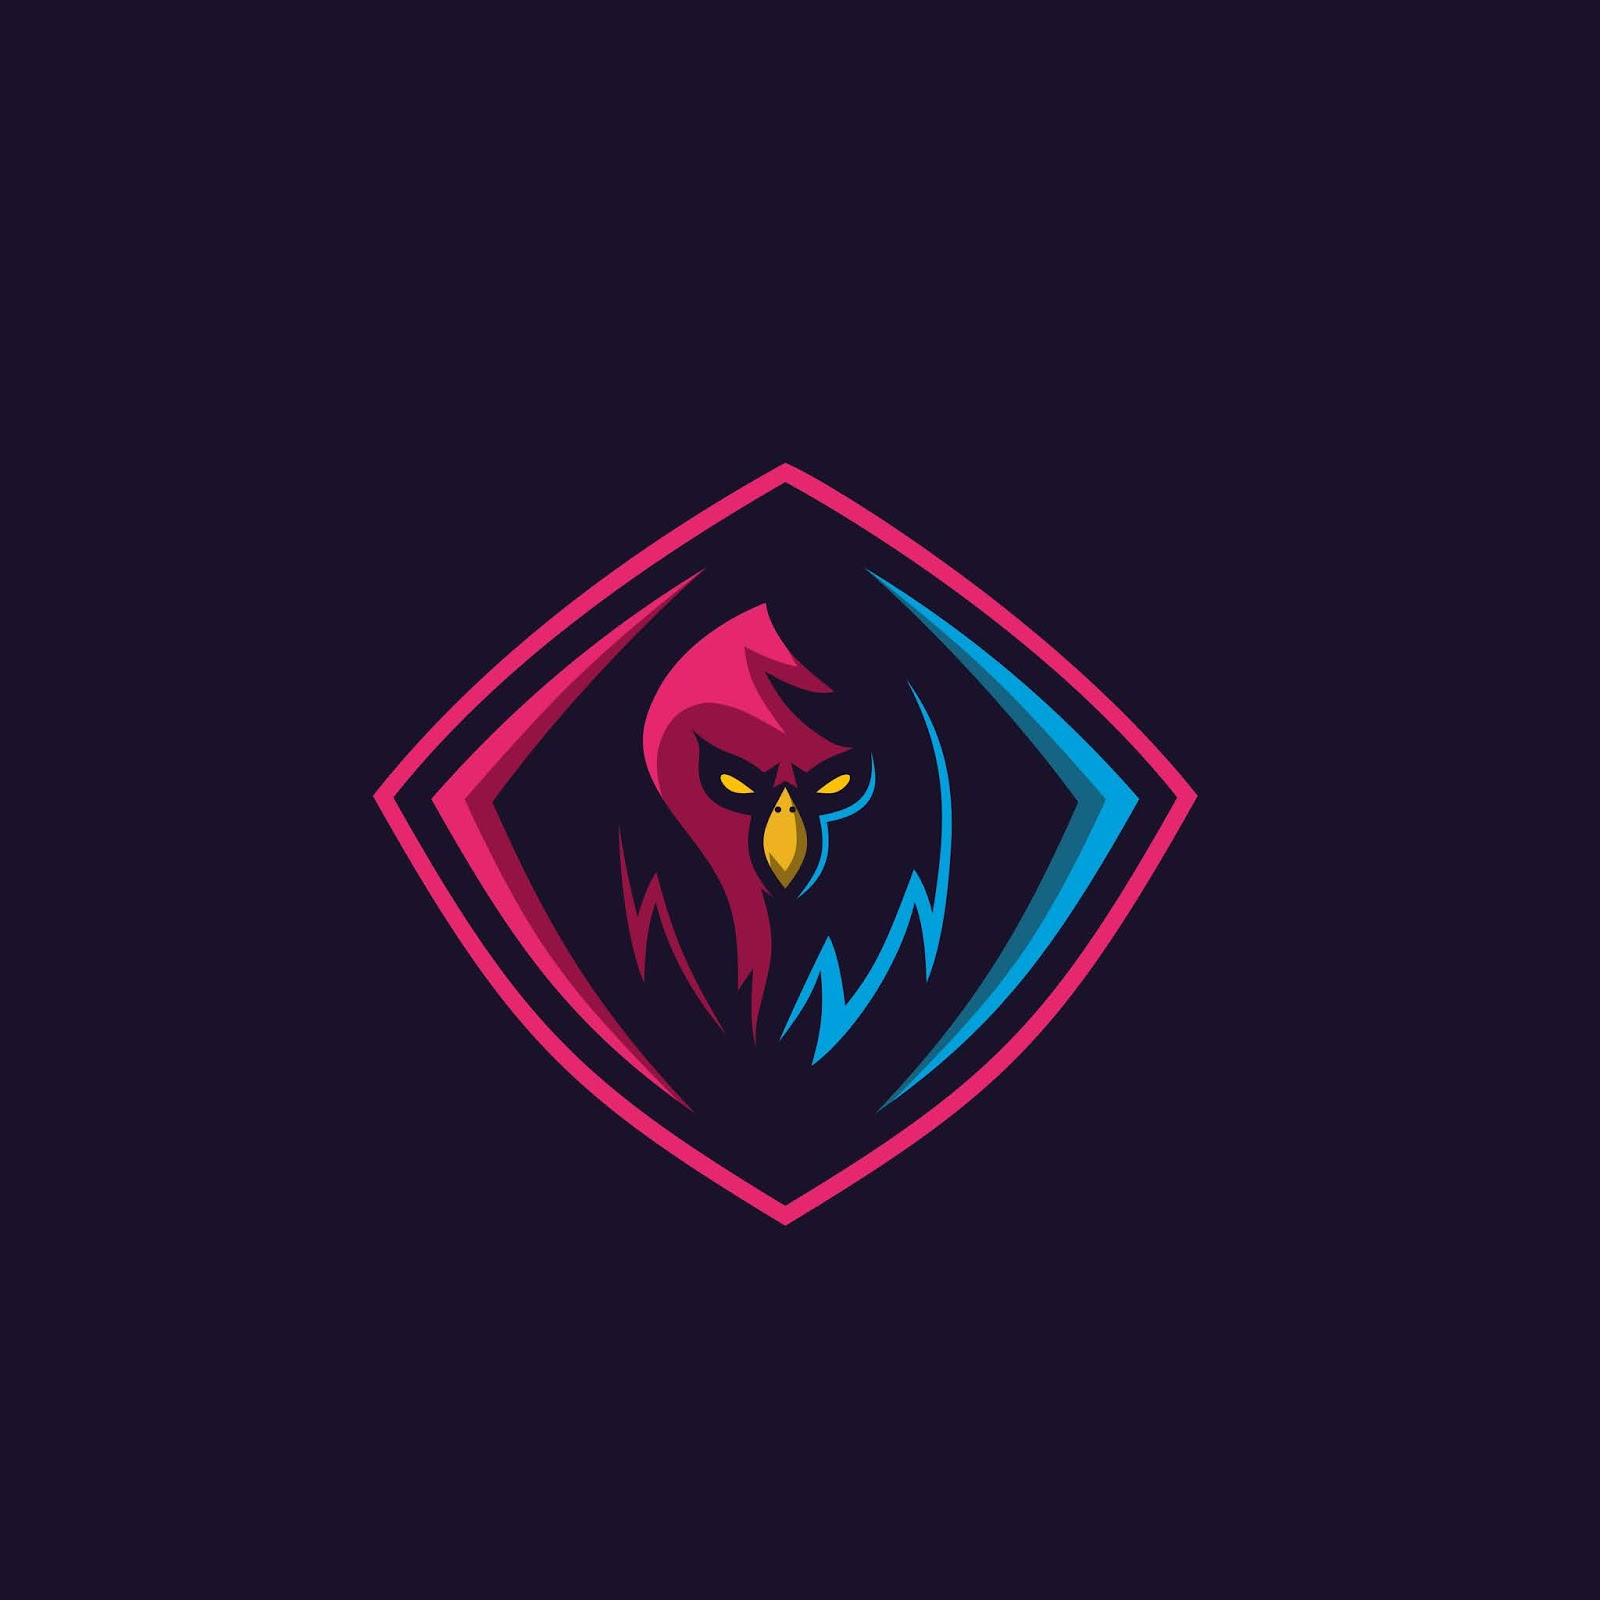 Simple Bird Logo Gaming Squad Free Download Vector CDR, AI, EPS and PNG Formats